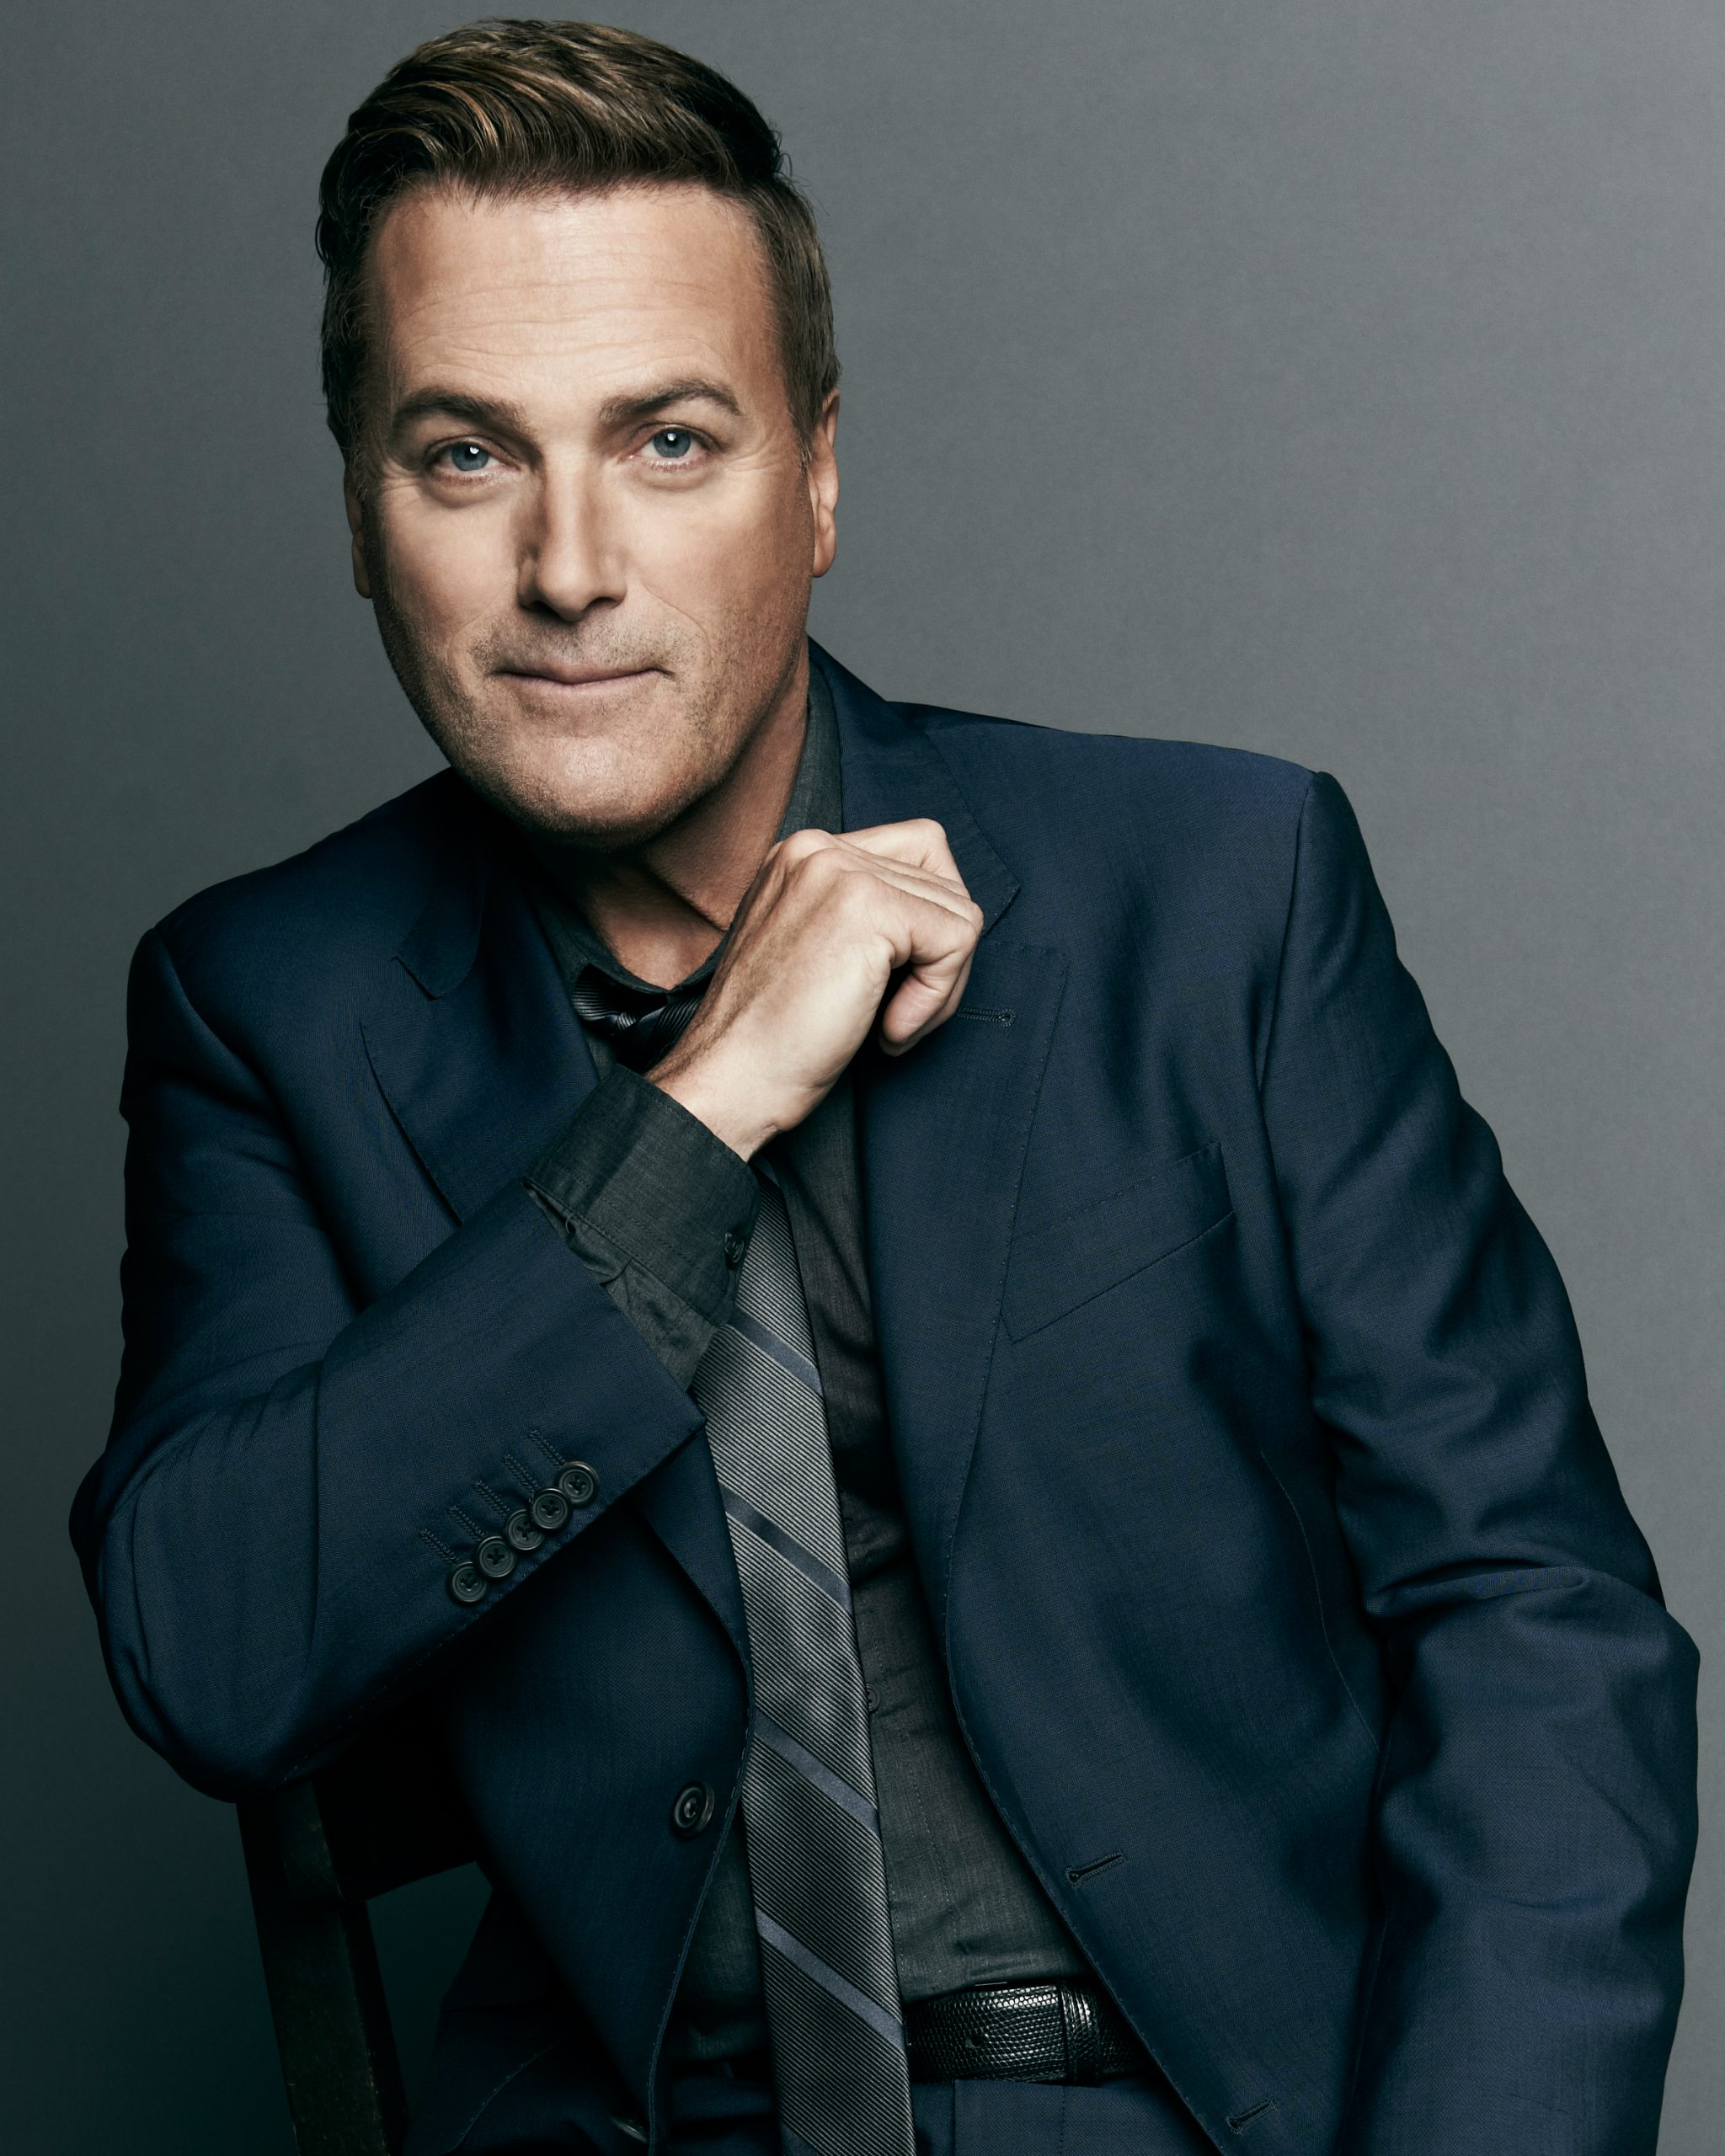 Michael W. Smith's Sharing Hope Interview Headshot Photograph